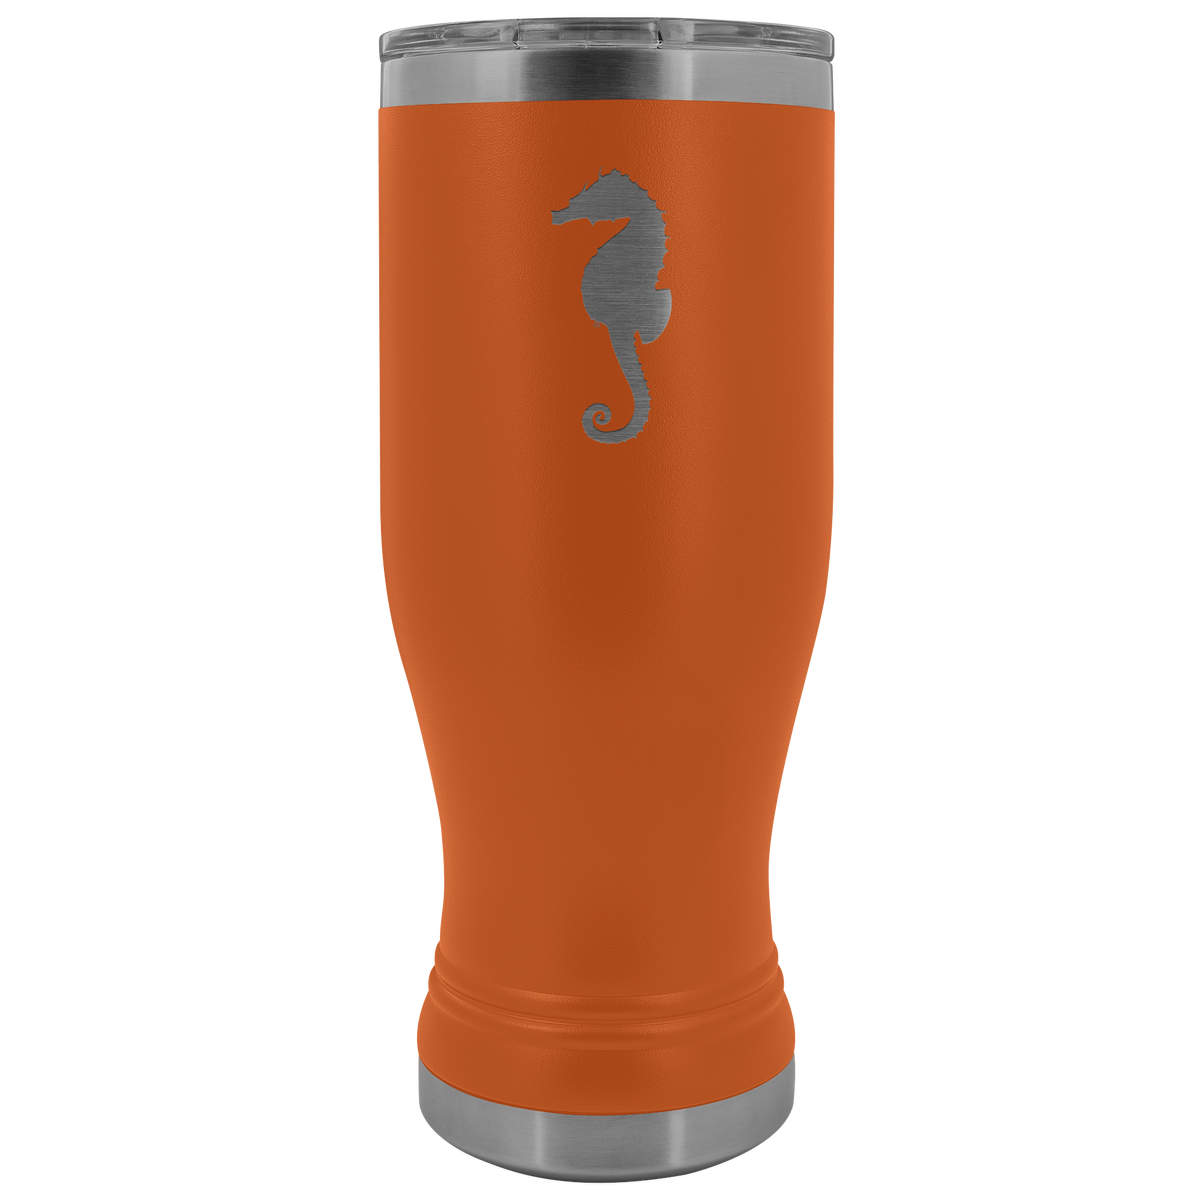 Sea horse stainless steel vacuum insulated BPA and Lead Free coffee Tumbler with clear lid